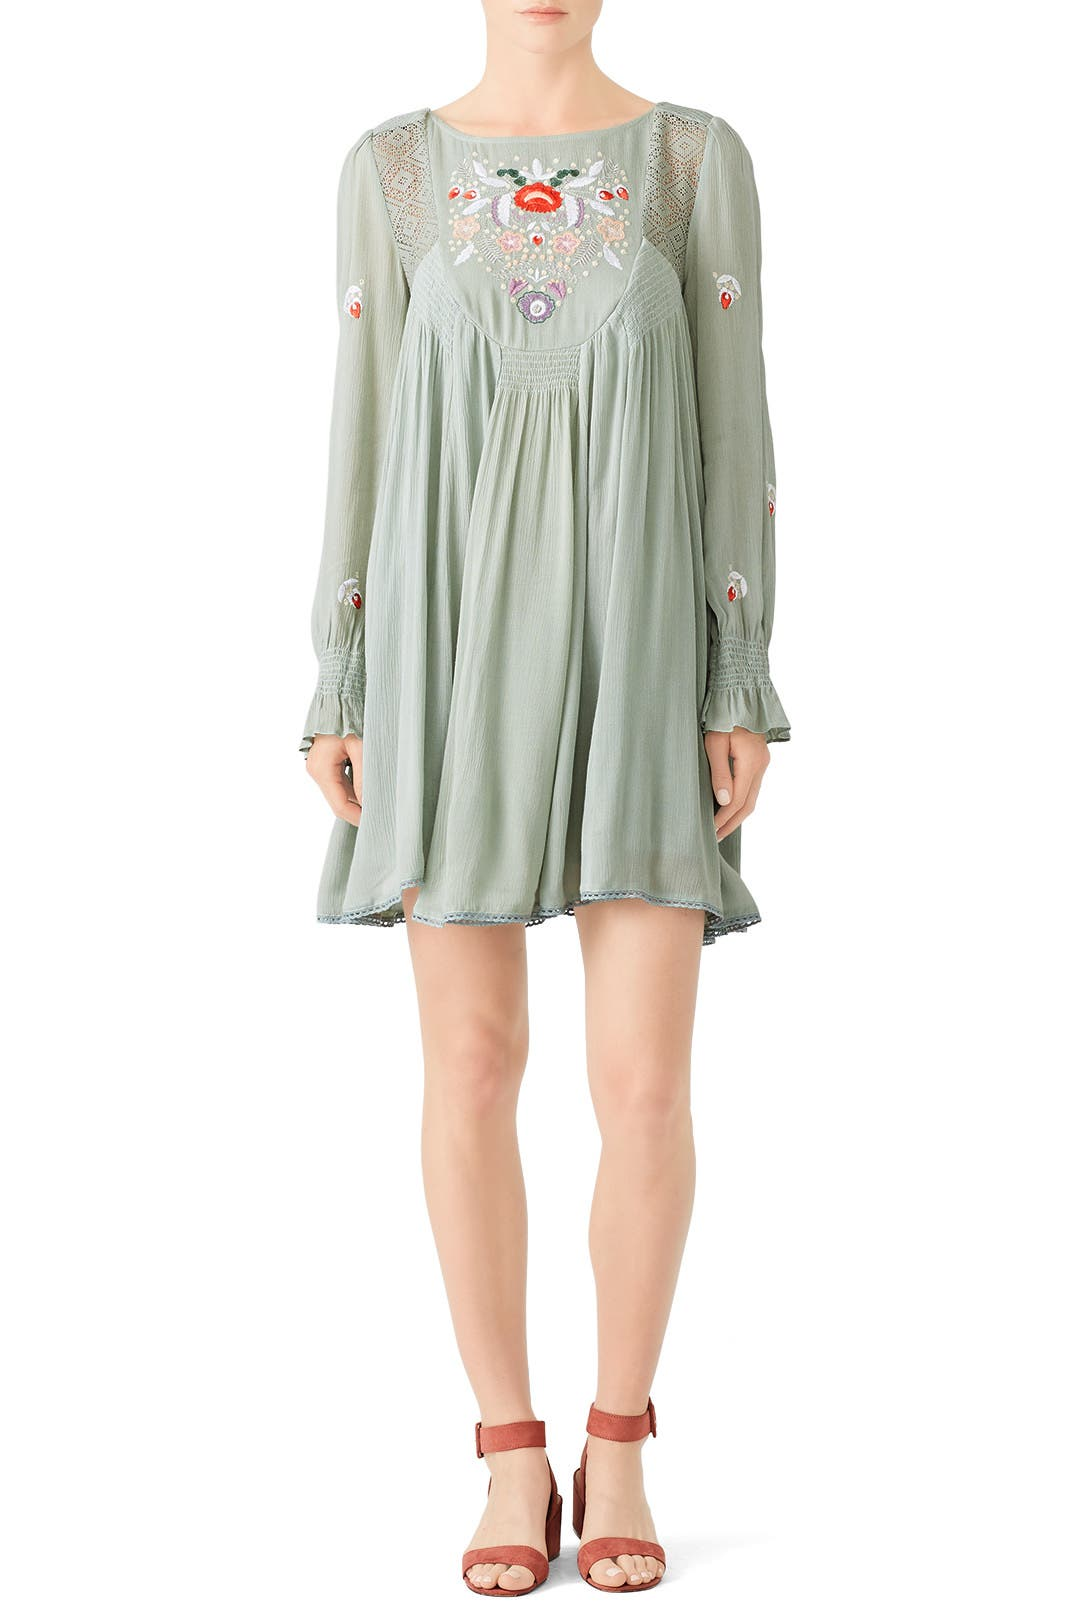 cc06c2bdeb469 Mint Mohave Mini Dress by Free People for $30 | Rent the Runway